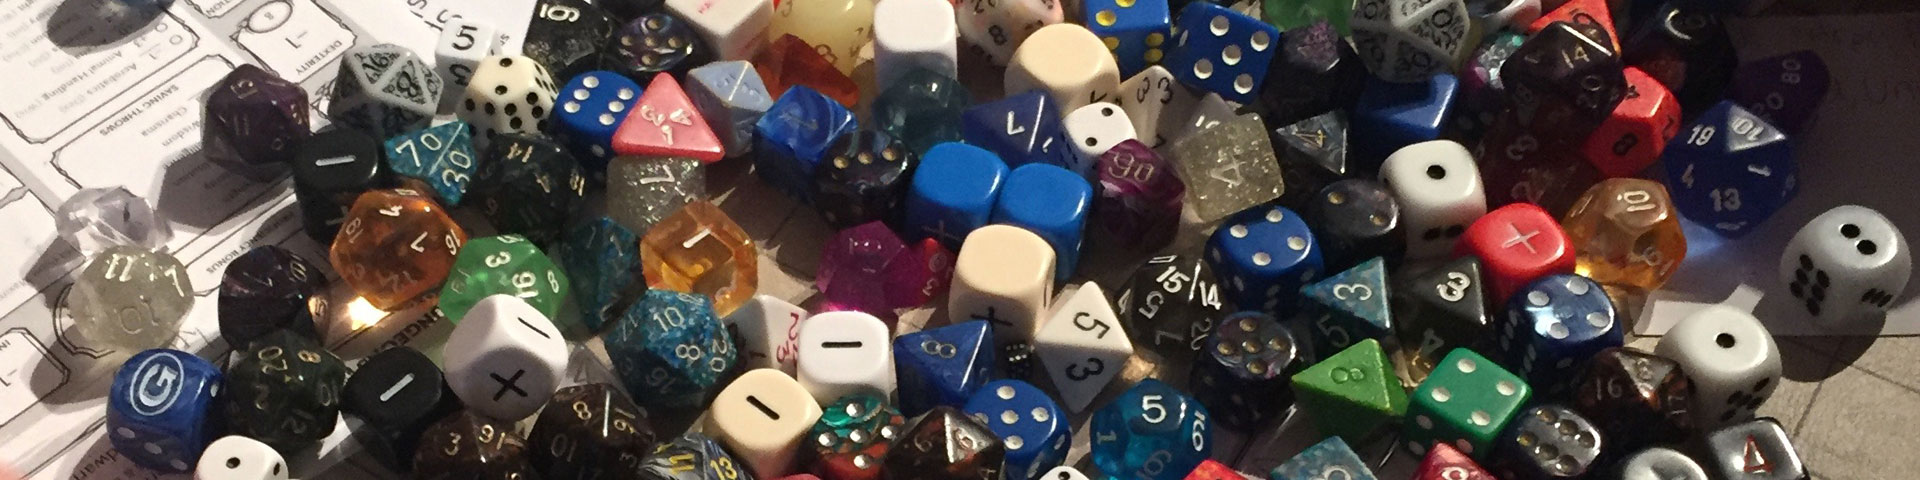 A close-up view of various polyhedral dice.